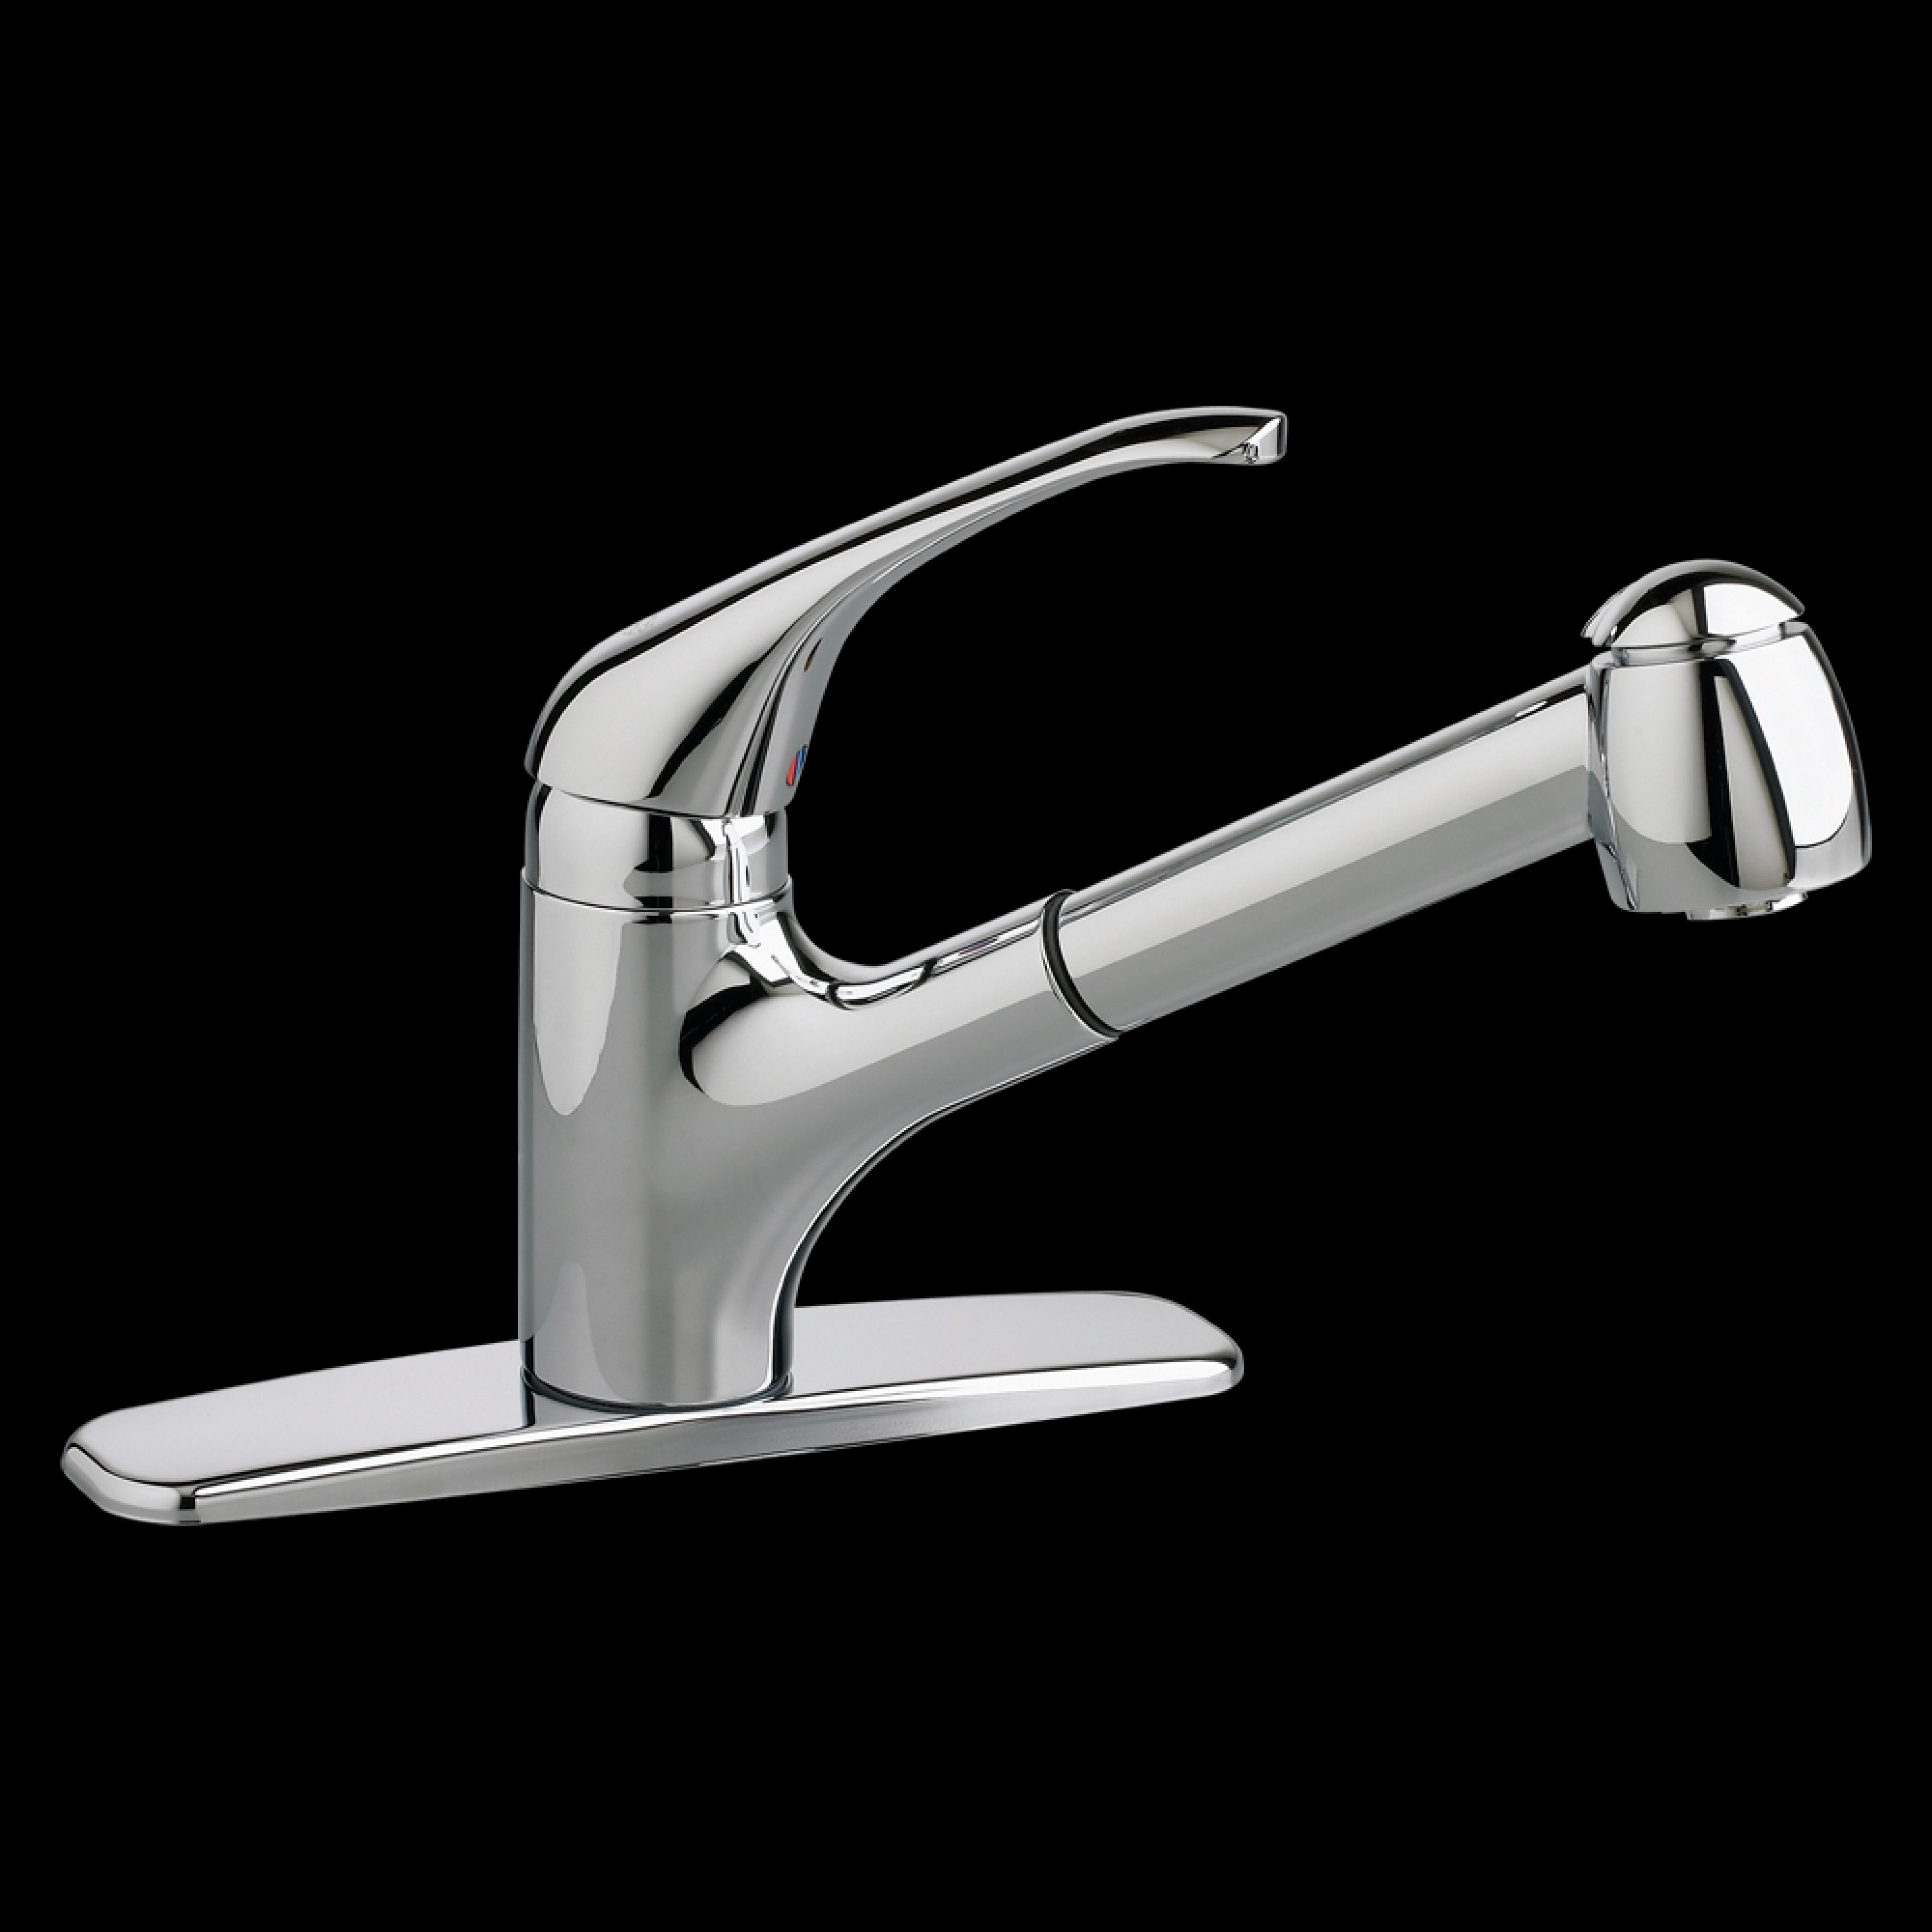 American standard kitchen faucets best interior paint brands check